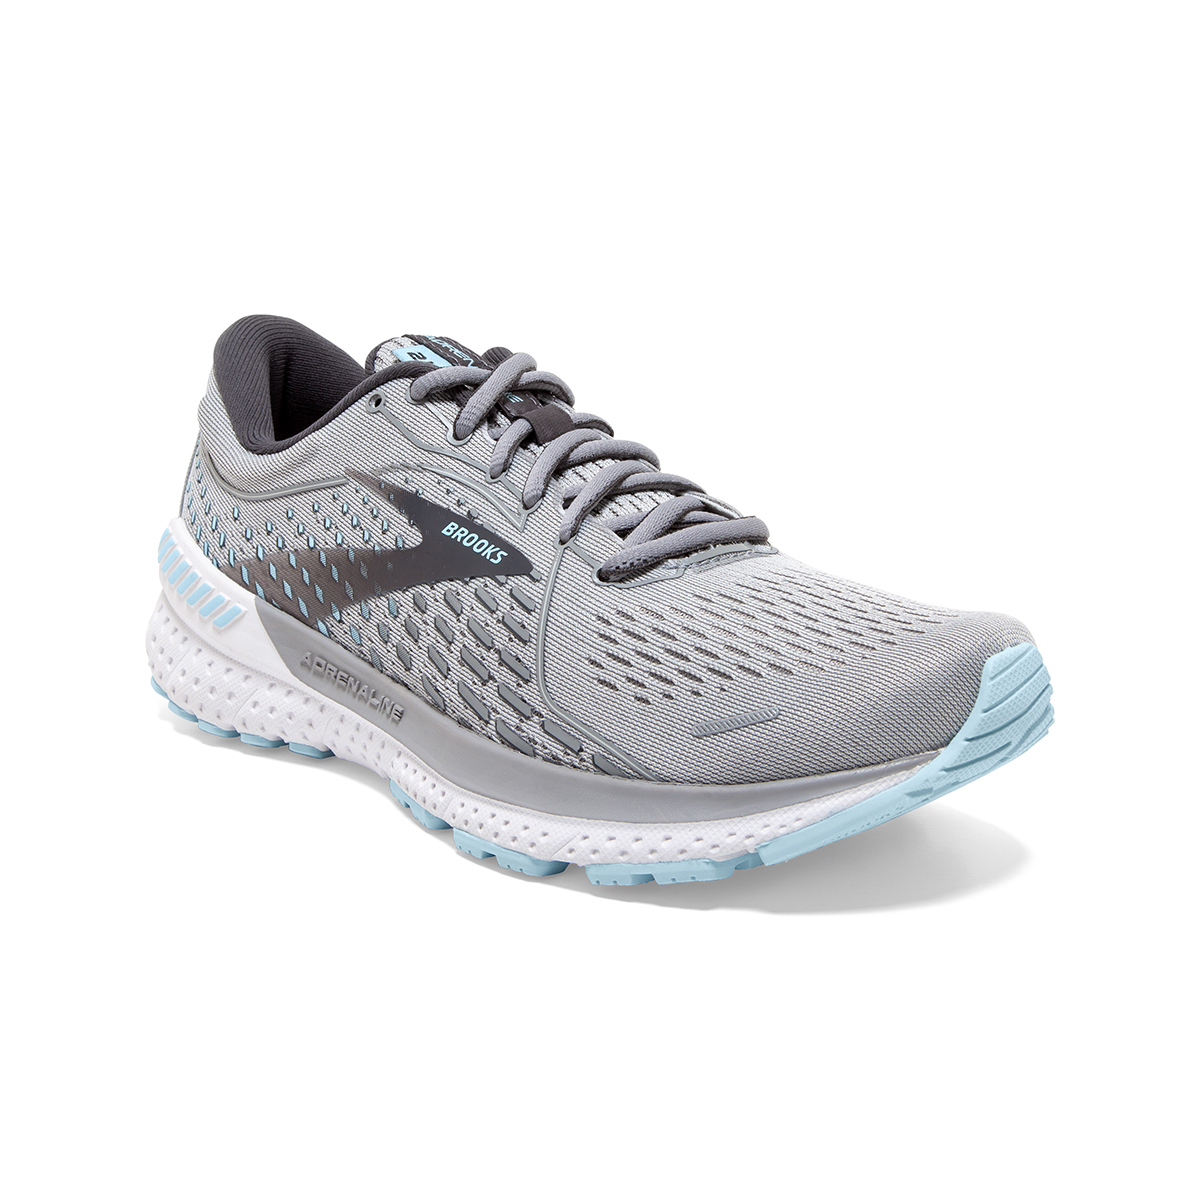 Women's Brooks Adrenaline GTS 21 Running Shoe - Color: Oyster/Alloy/Light Blue - Size: 5 - Width: Wide, Oyster/Alloy/Light Blue, large, image 2